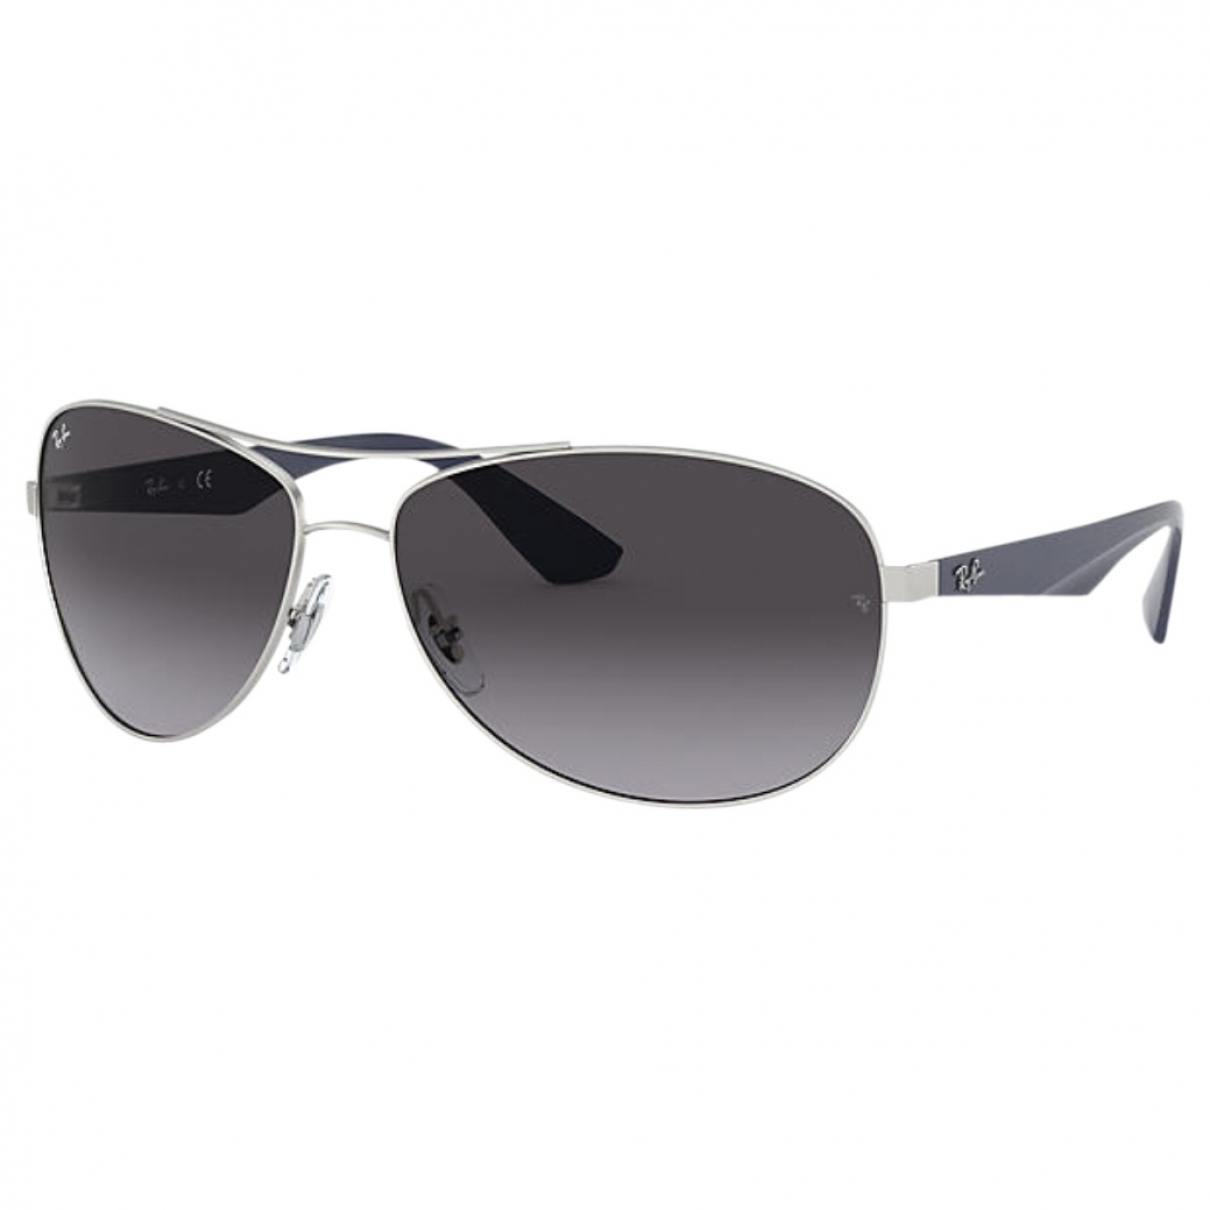 Ray-ban - Lunettes Aviator pour homme en metal - anthracite